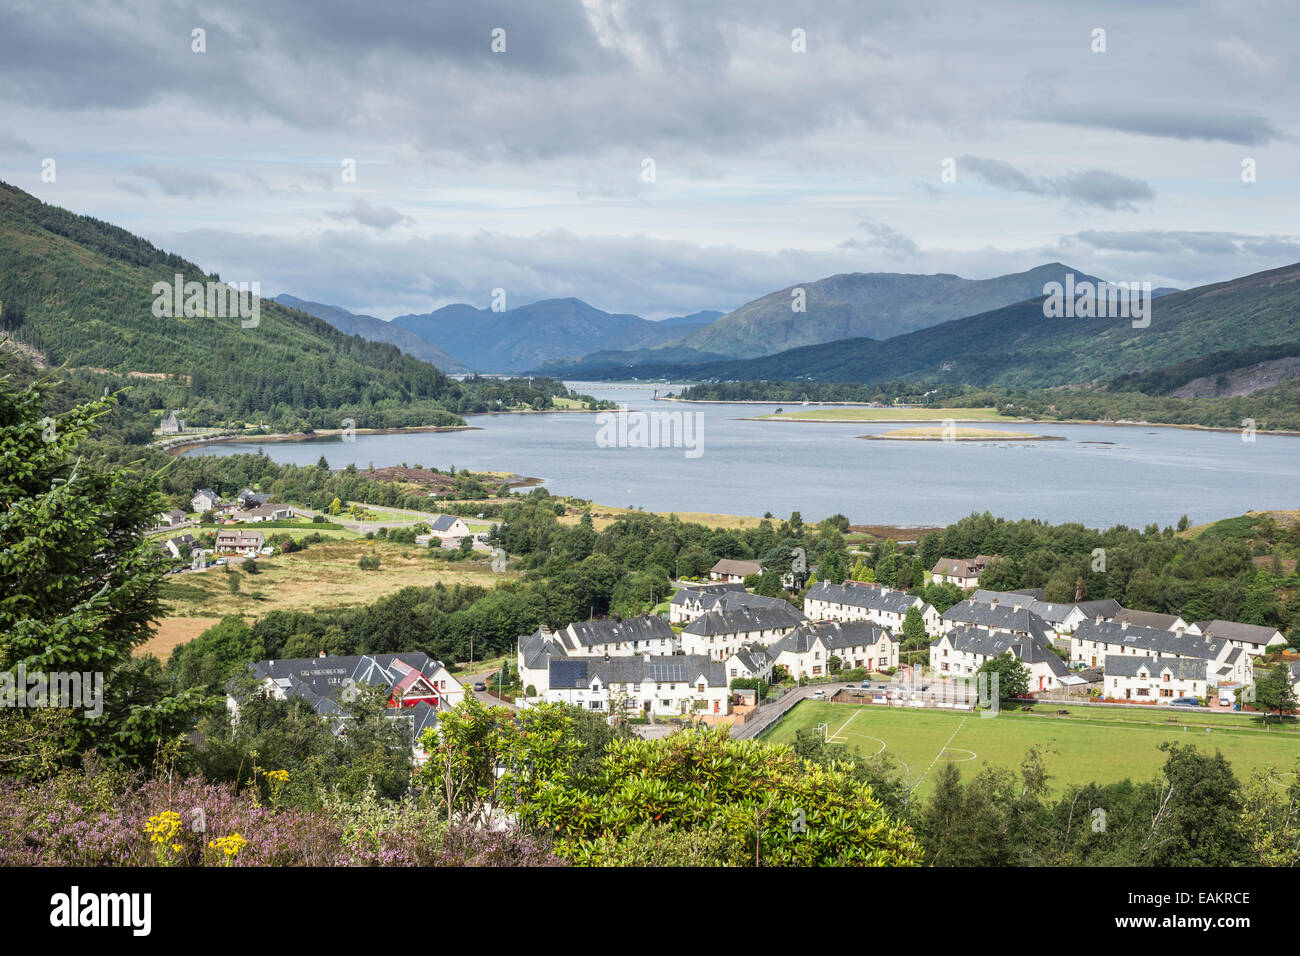 View over Loch Leven & Ballachulish. - Stock Image